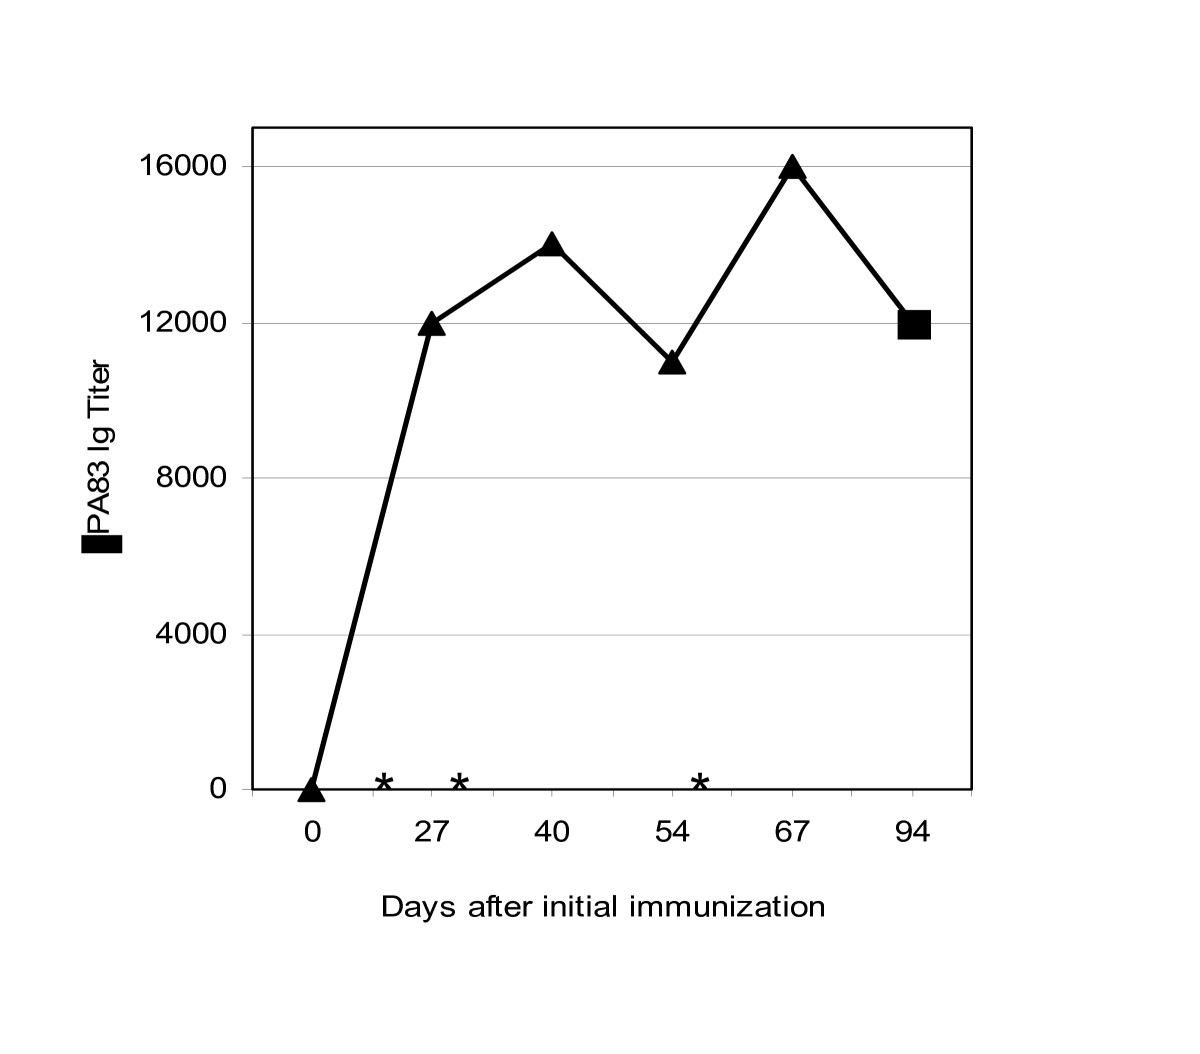 http://static-content.springer.com/image/art%3A10.1186%2F1476-8518-5-11/MediaObjects/12949_2007_Article_39_Fig1_HTML.jpg